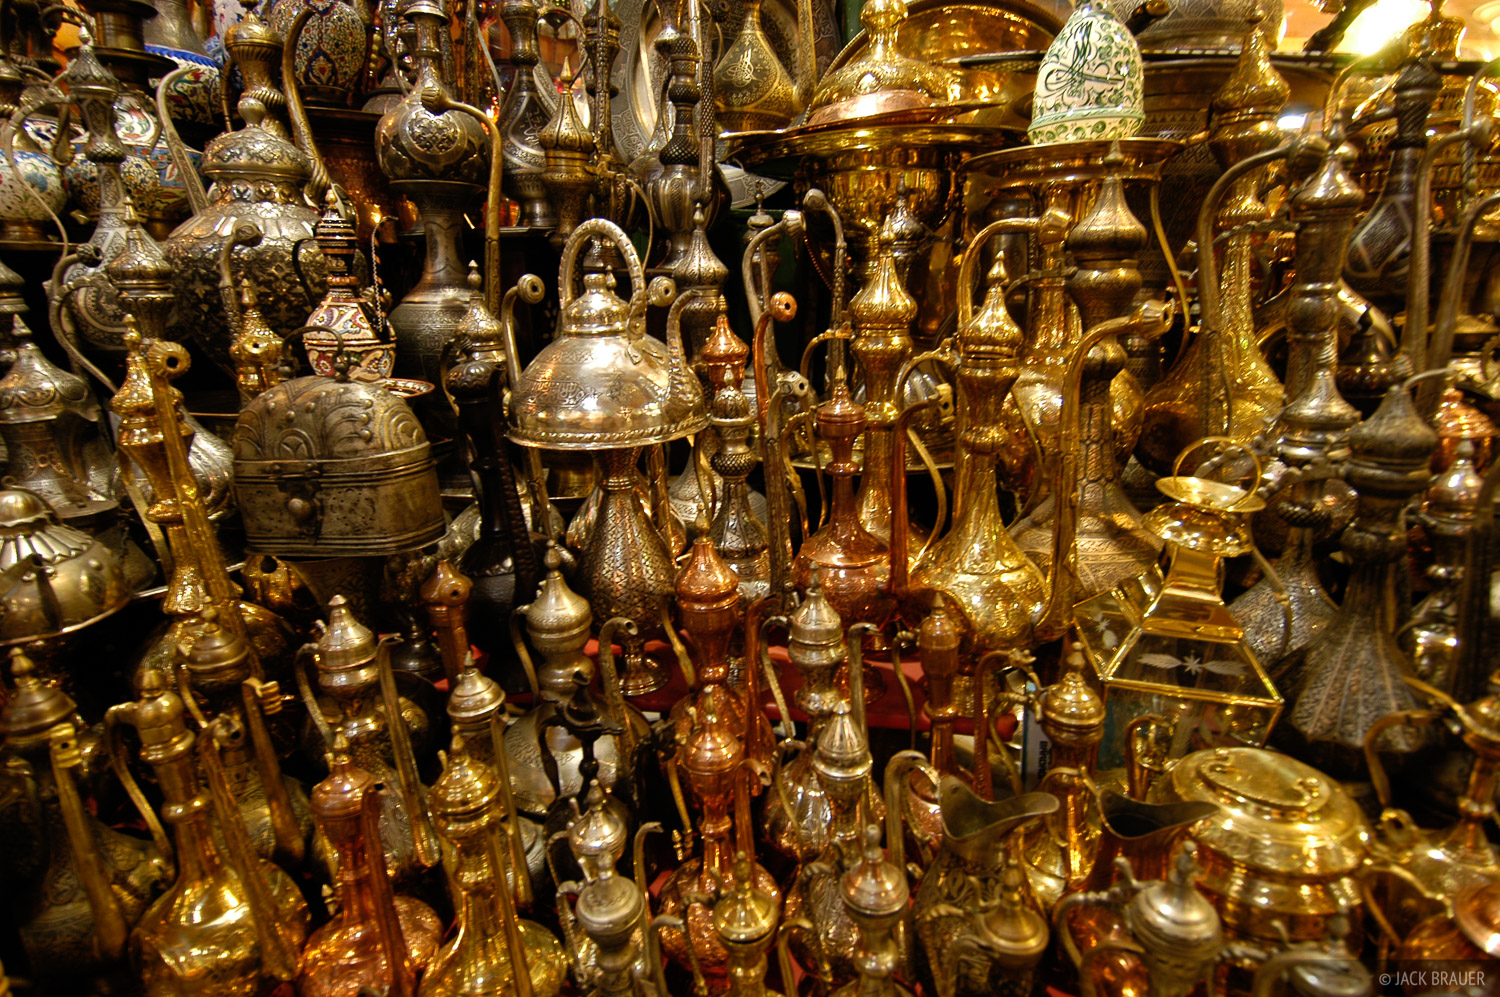 Grand Bazaar, Istanbul, Turkey, photo